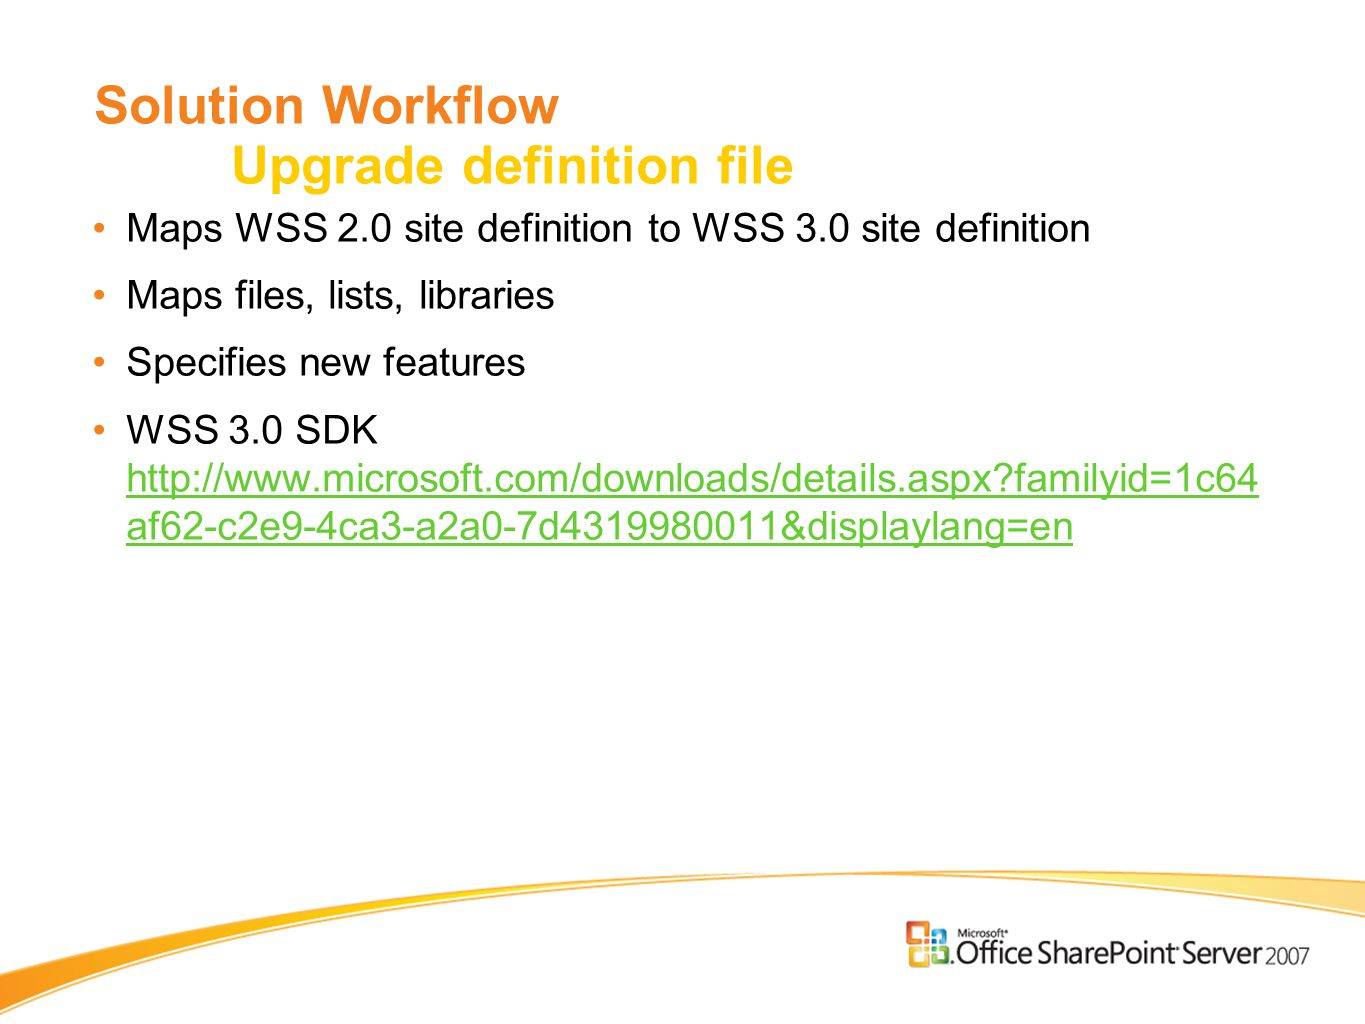 Solution Workflow Upgrade definition file Maps WSS 2.0 site definition to WSS 3.0 site definition Maps files, lists, libraries Specifies new features WSS 3.0 SDK   familyid=1c64 af62-c2e9-4ca3-a2a0-7d &displaylang=en   familyid=1c64 af62-c2e9-4ca3-a2a0-7d &displaylang=en